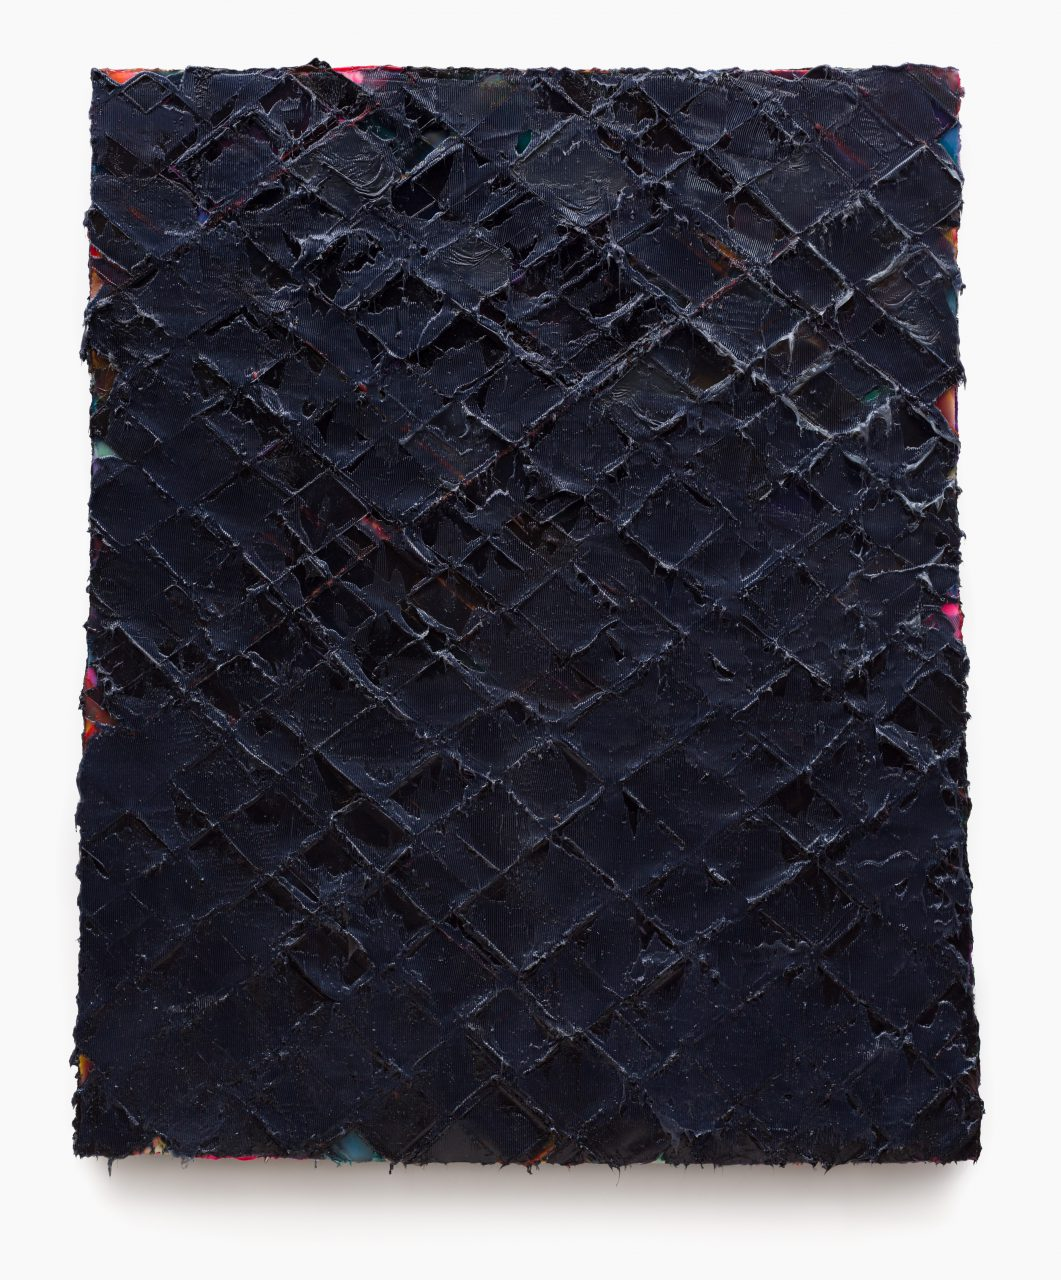 Ollycodd, 2014, Silicone and Pigments on Honeycomb Board, 167 x 138 cm